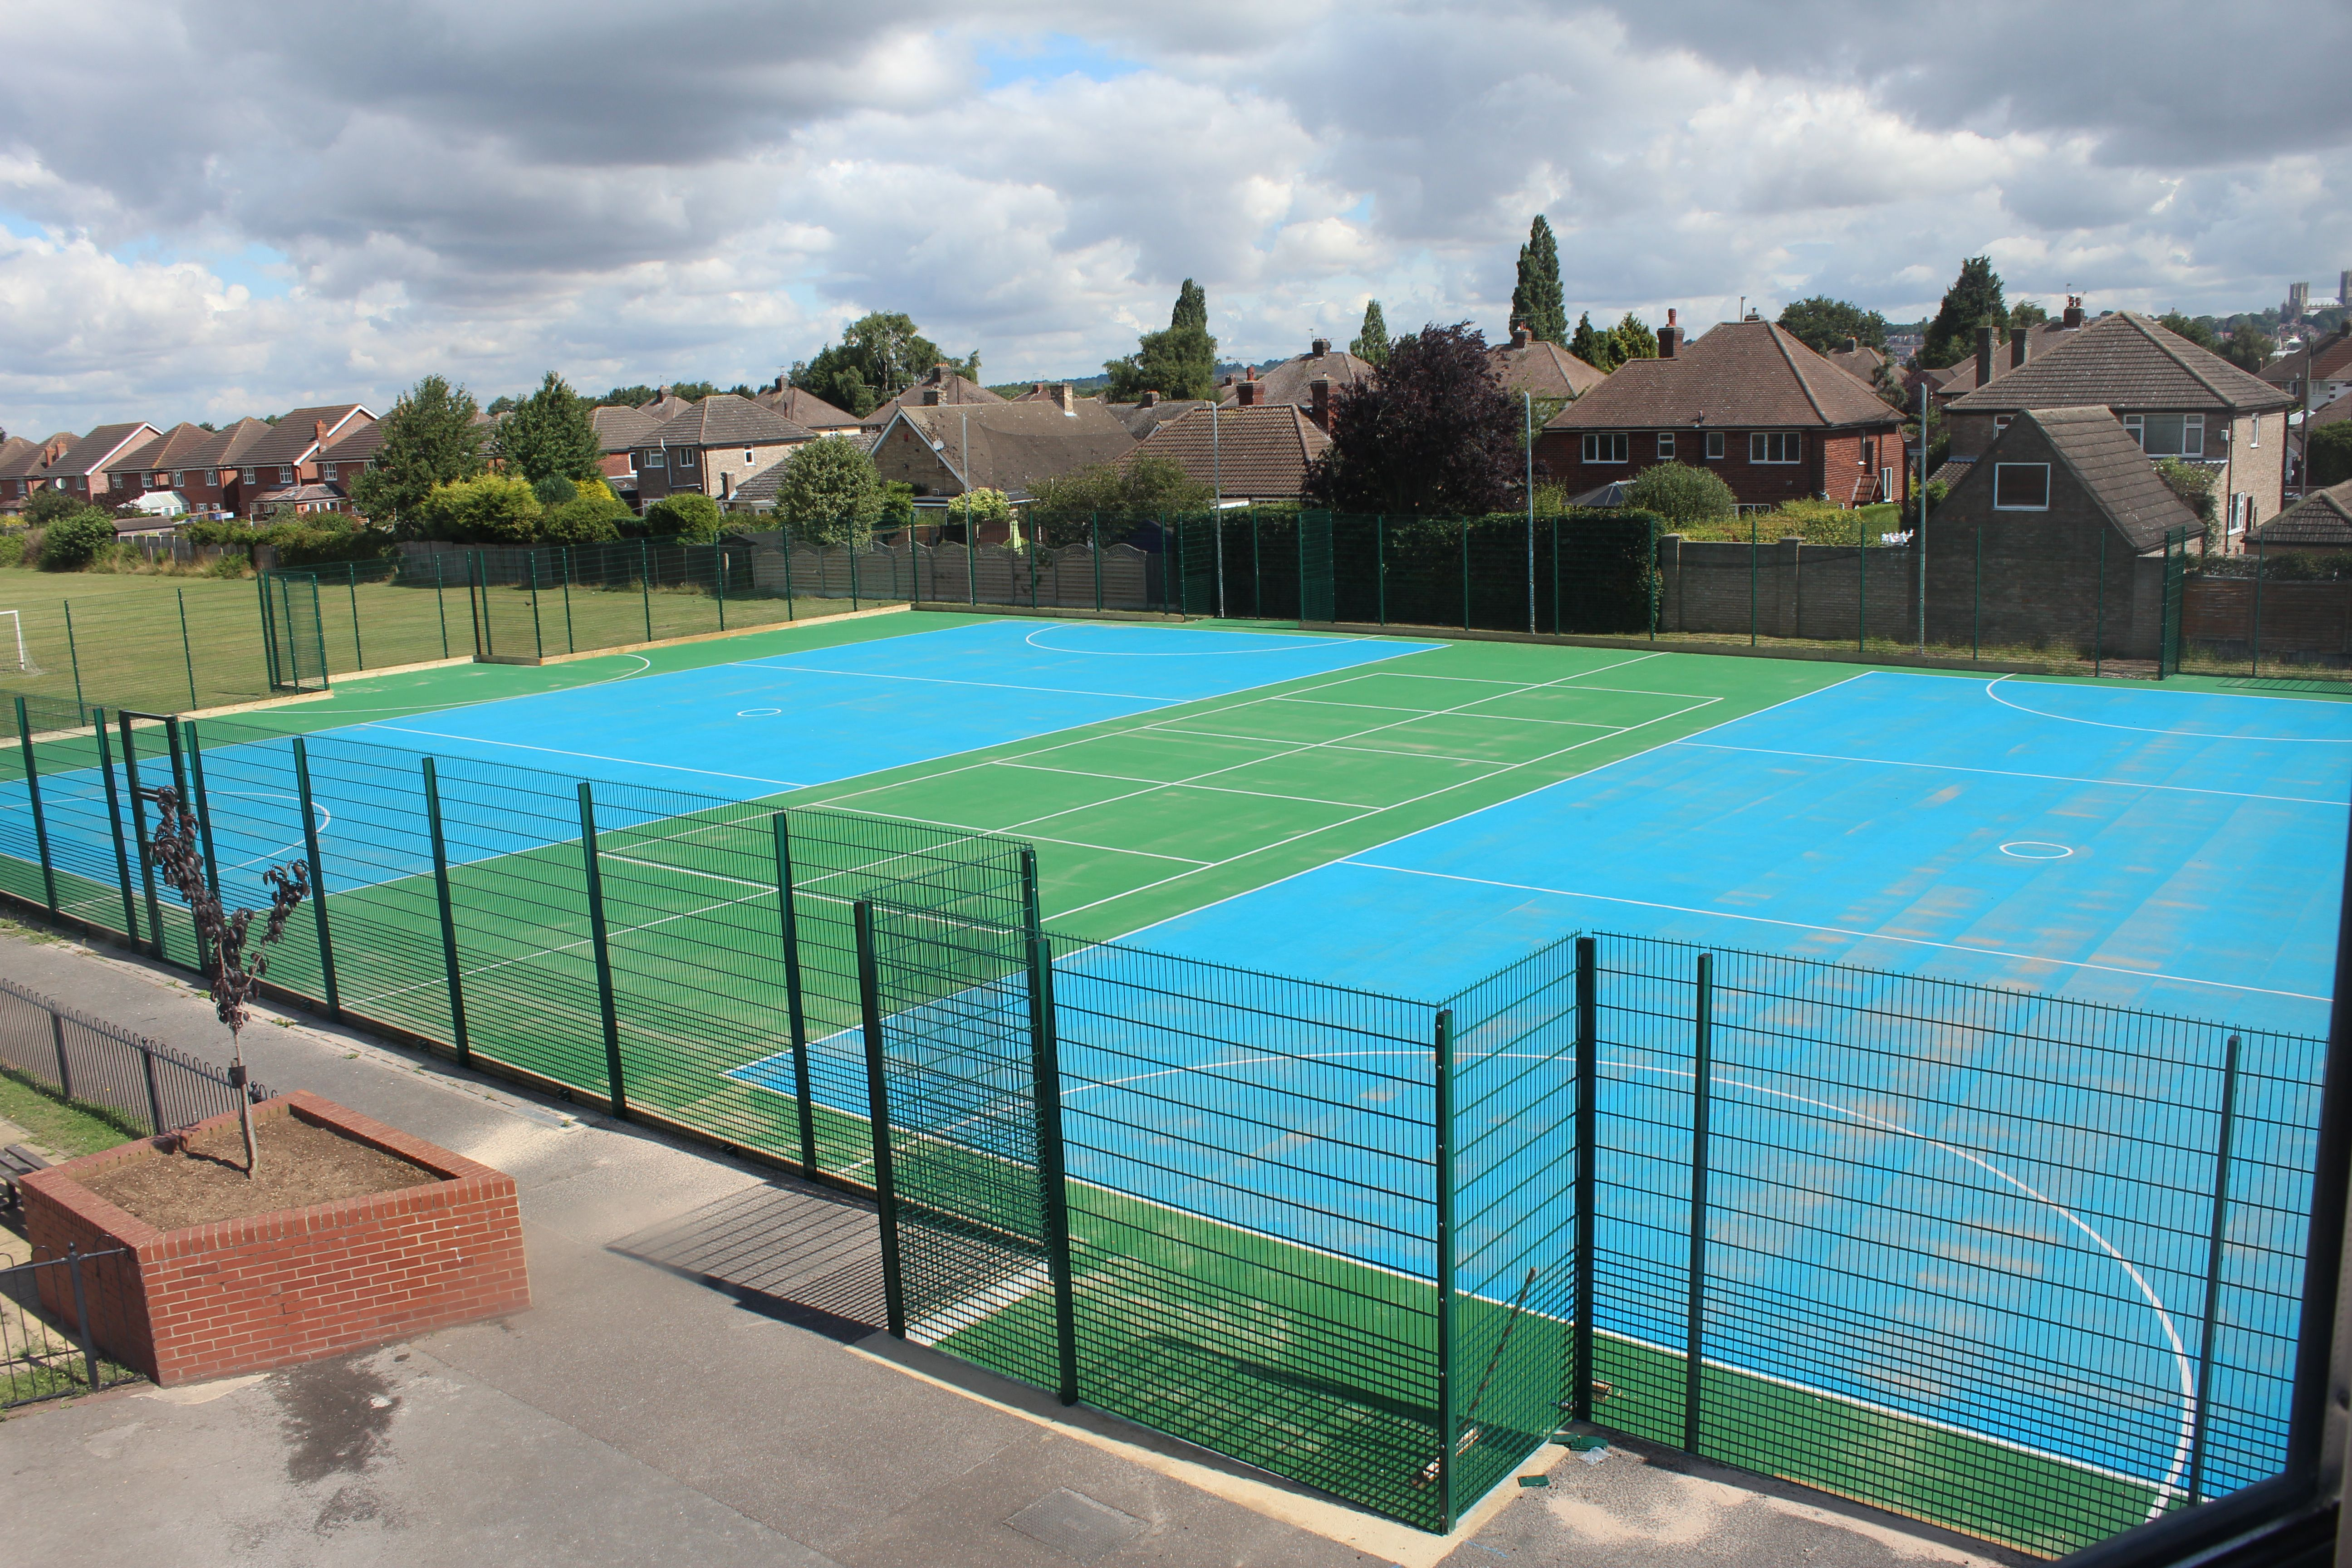 St Peter & St Paul's Catholic School in Lincoln now has a